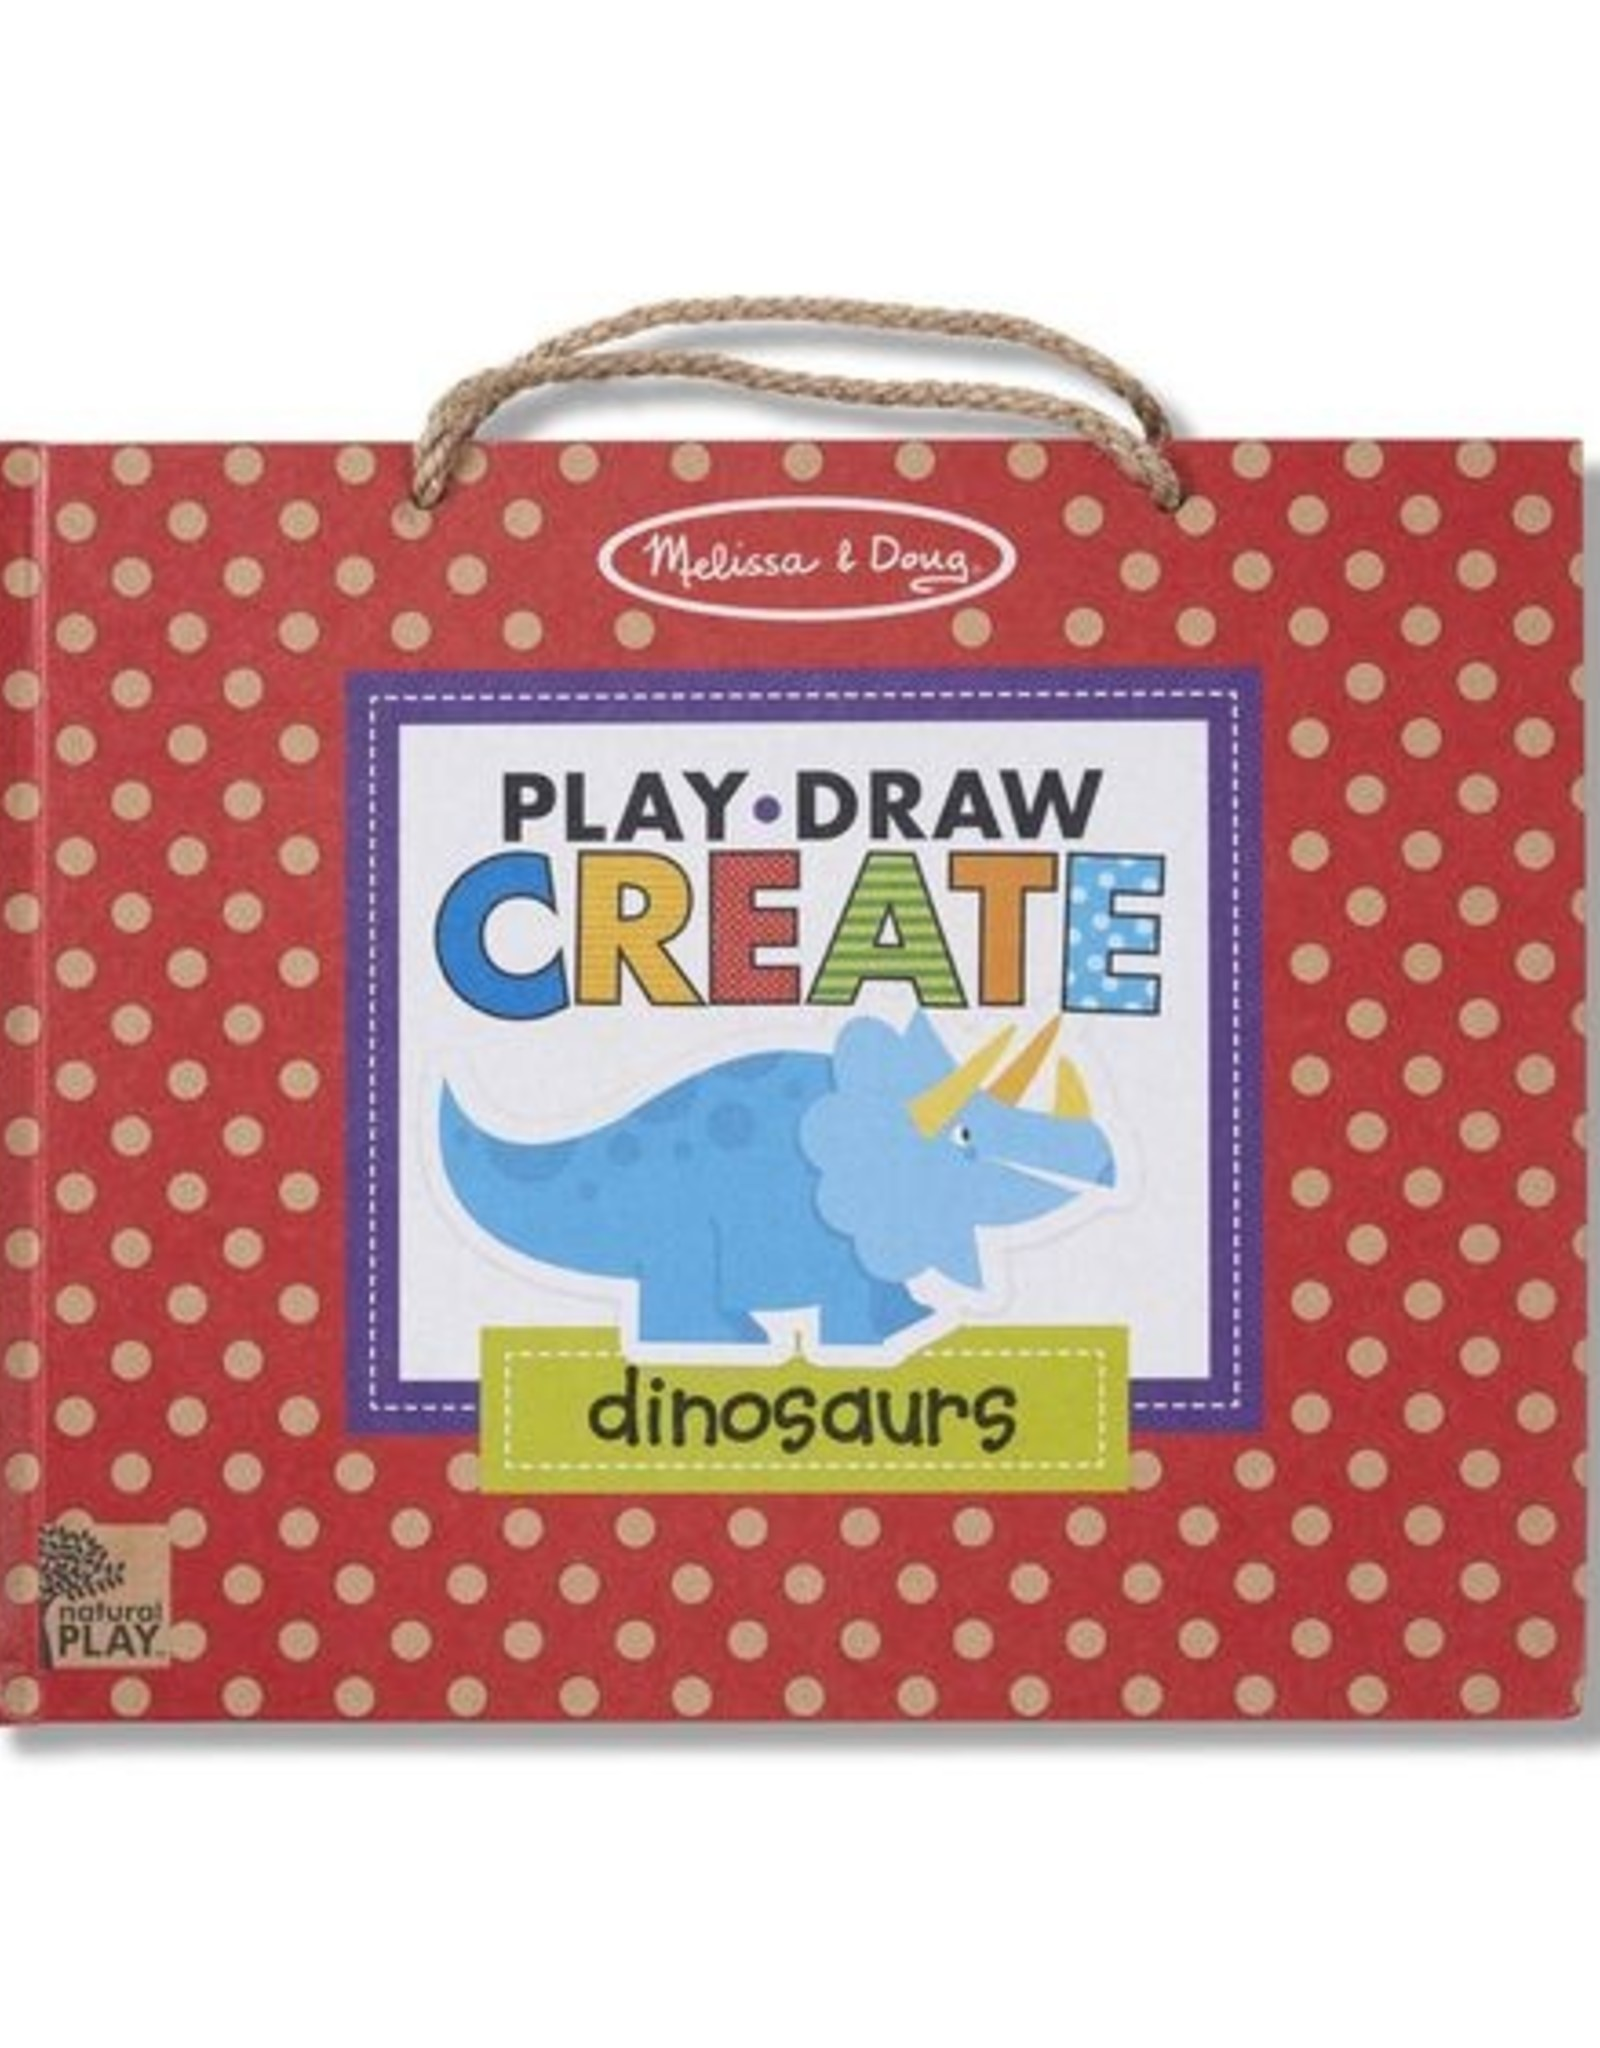 Melissa & Doug Play, Draw, Create - Dinosaurs